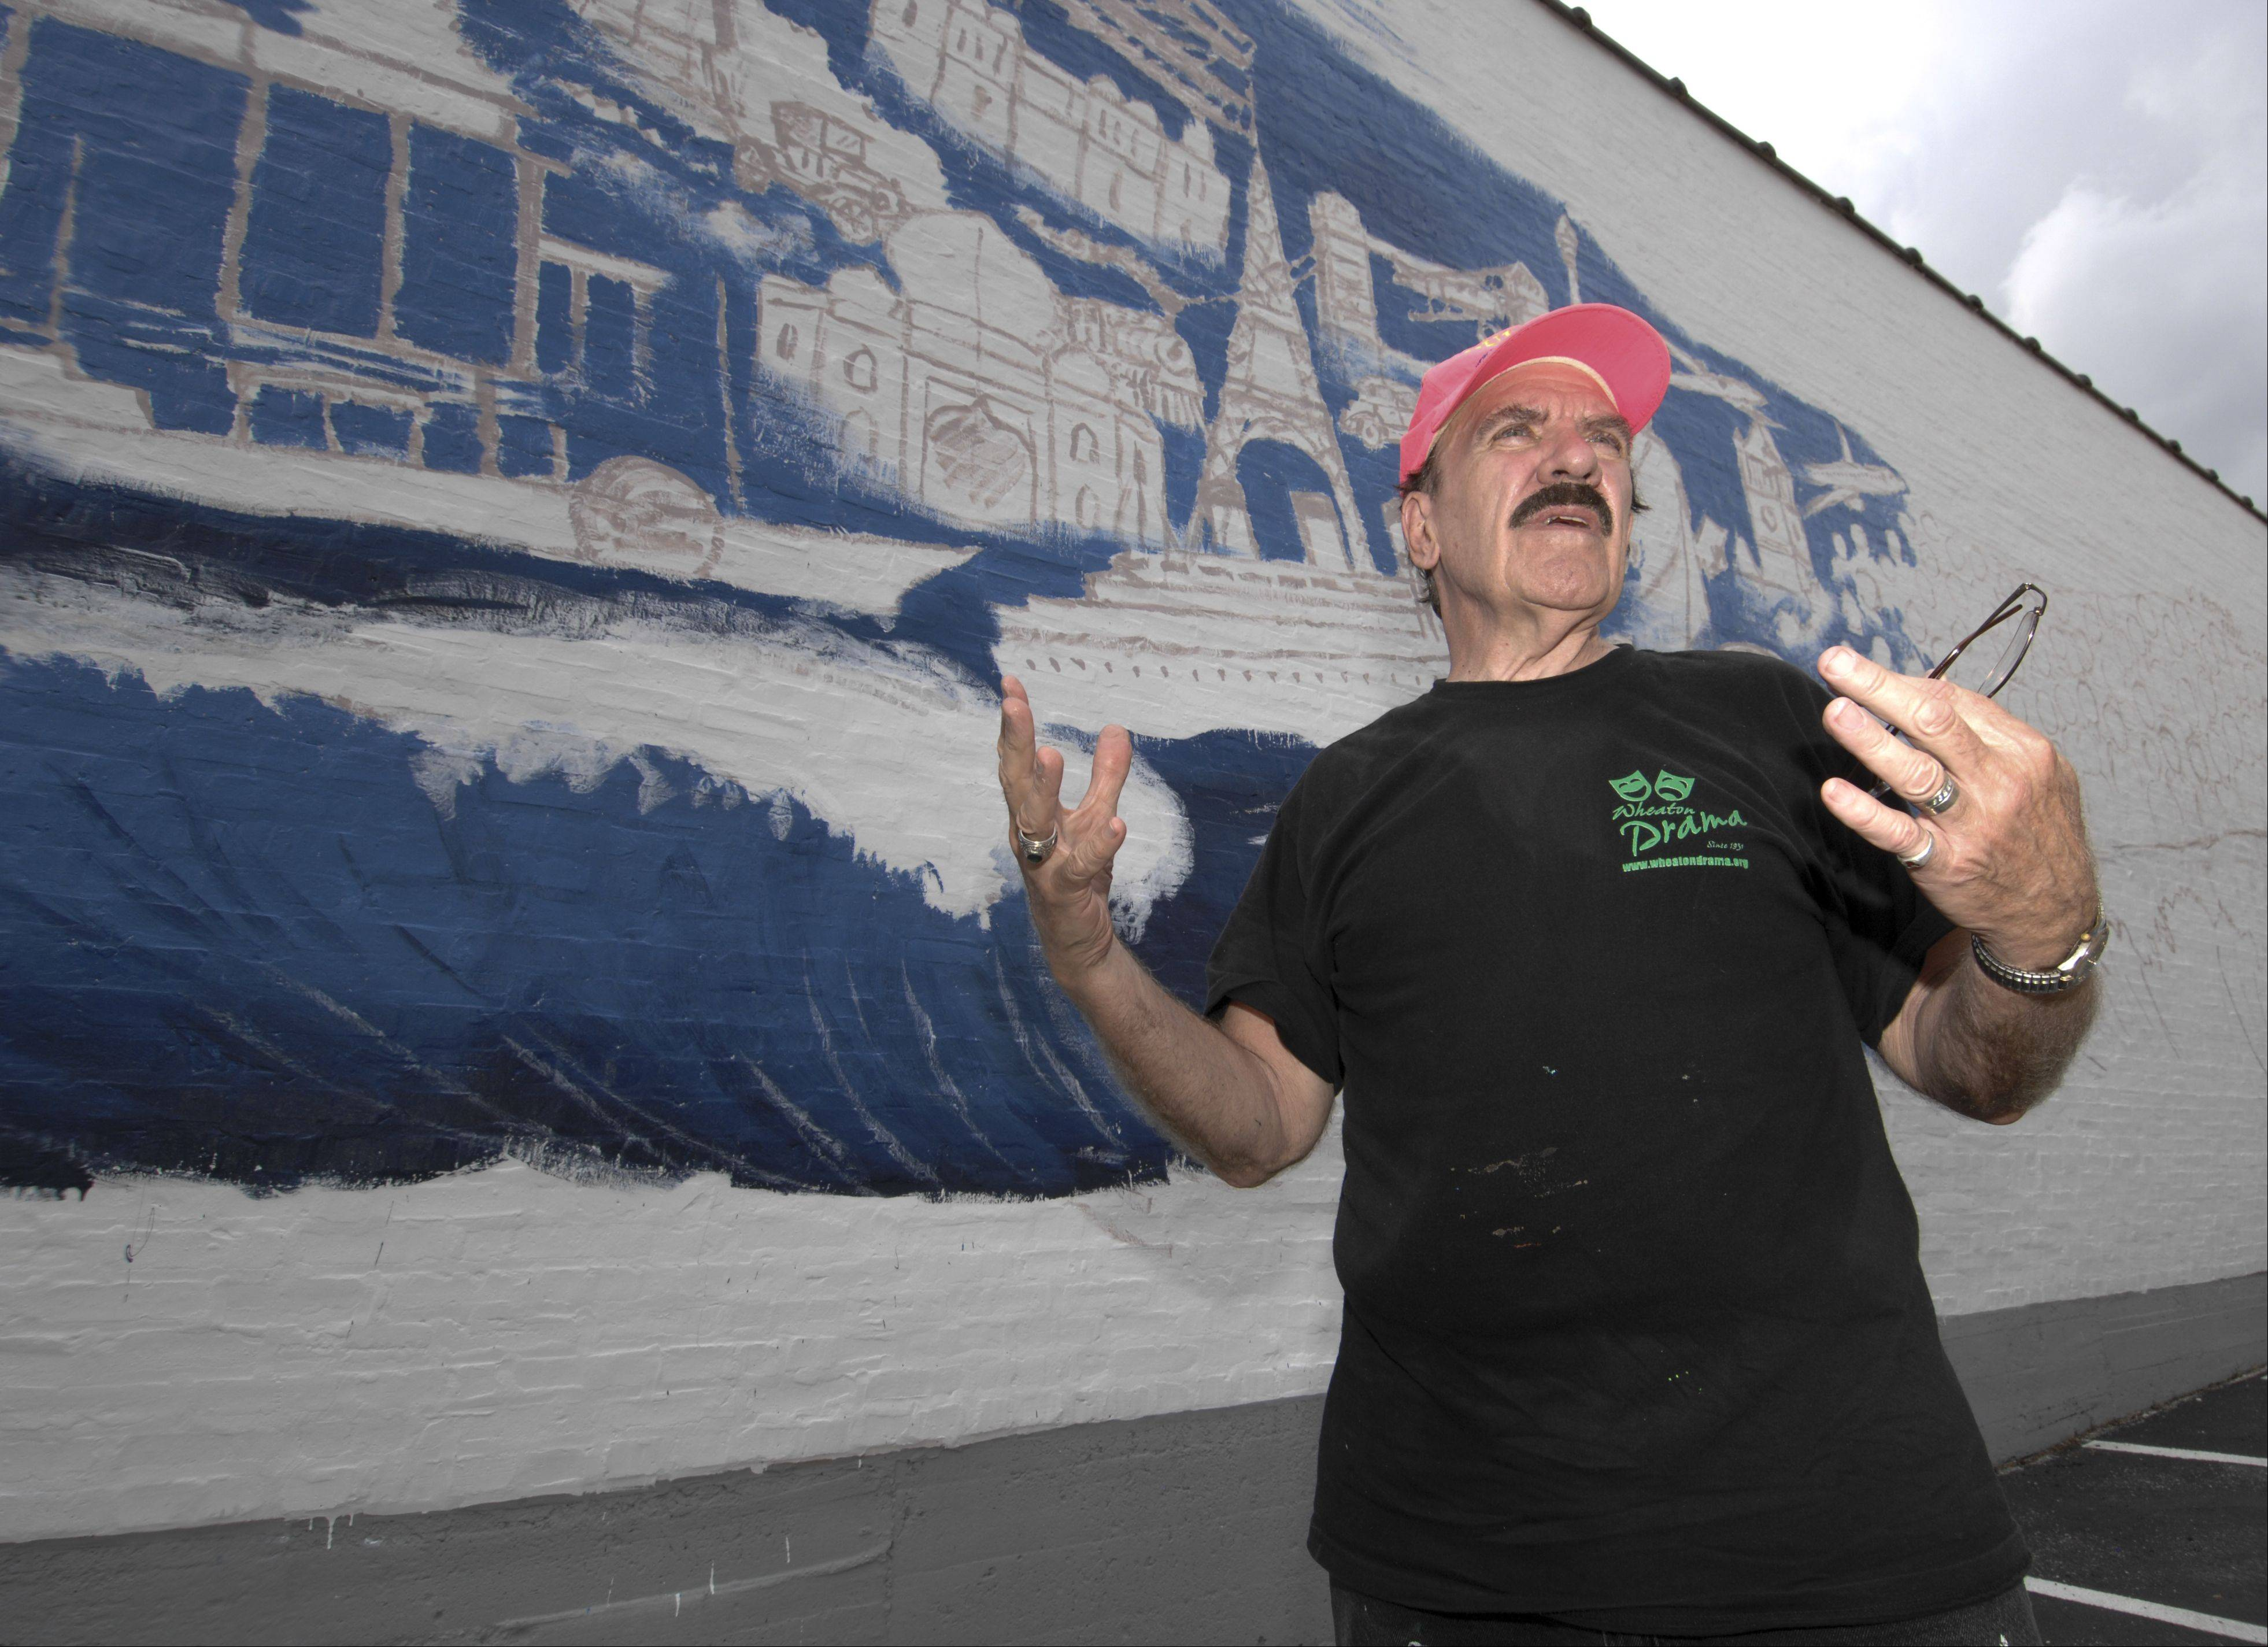 Supporters hope new Wheaton mural celebrates diversity, togetherness